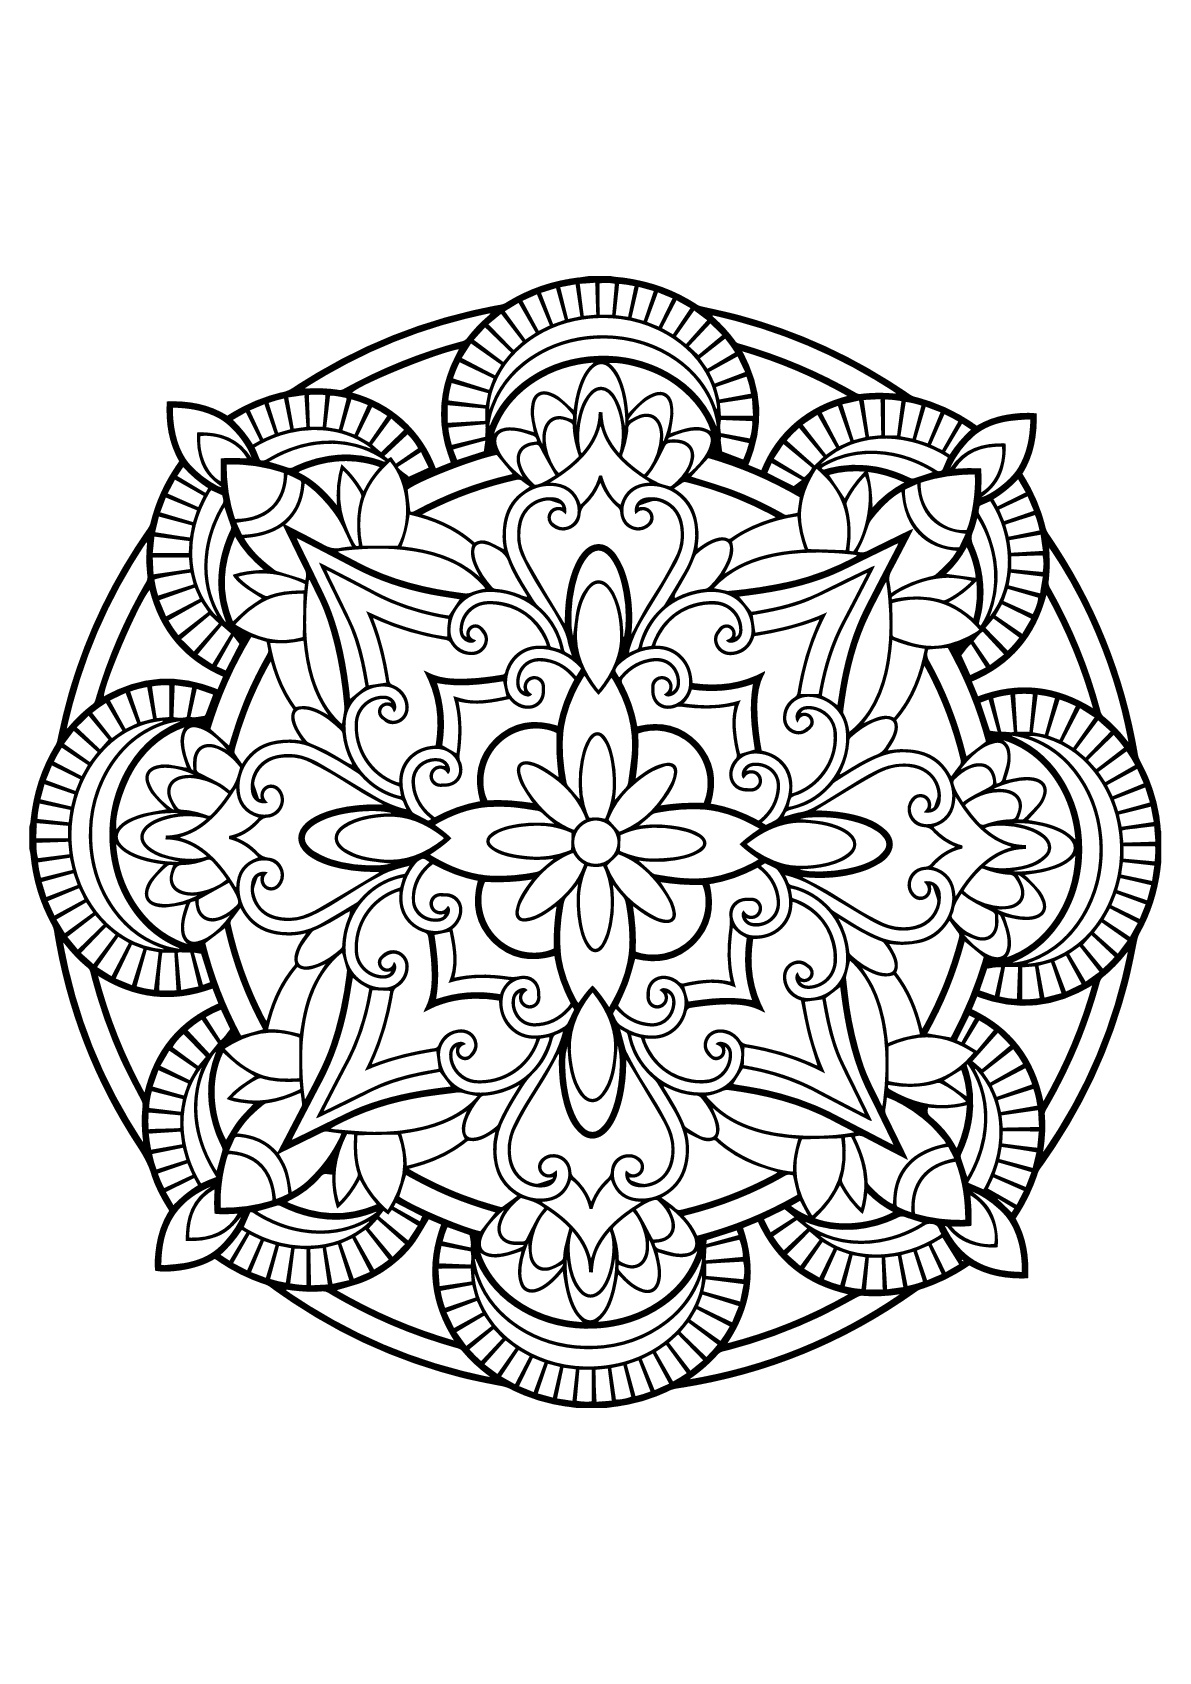 Mandala from free coloring books for adults 23 m alas for Printable mandala coloring pages for adults